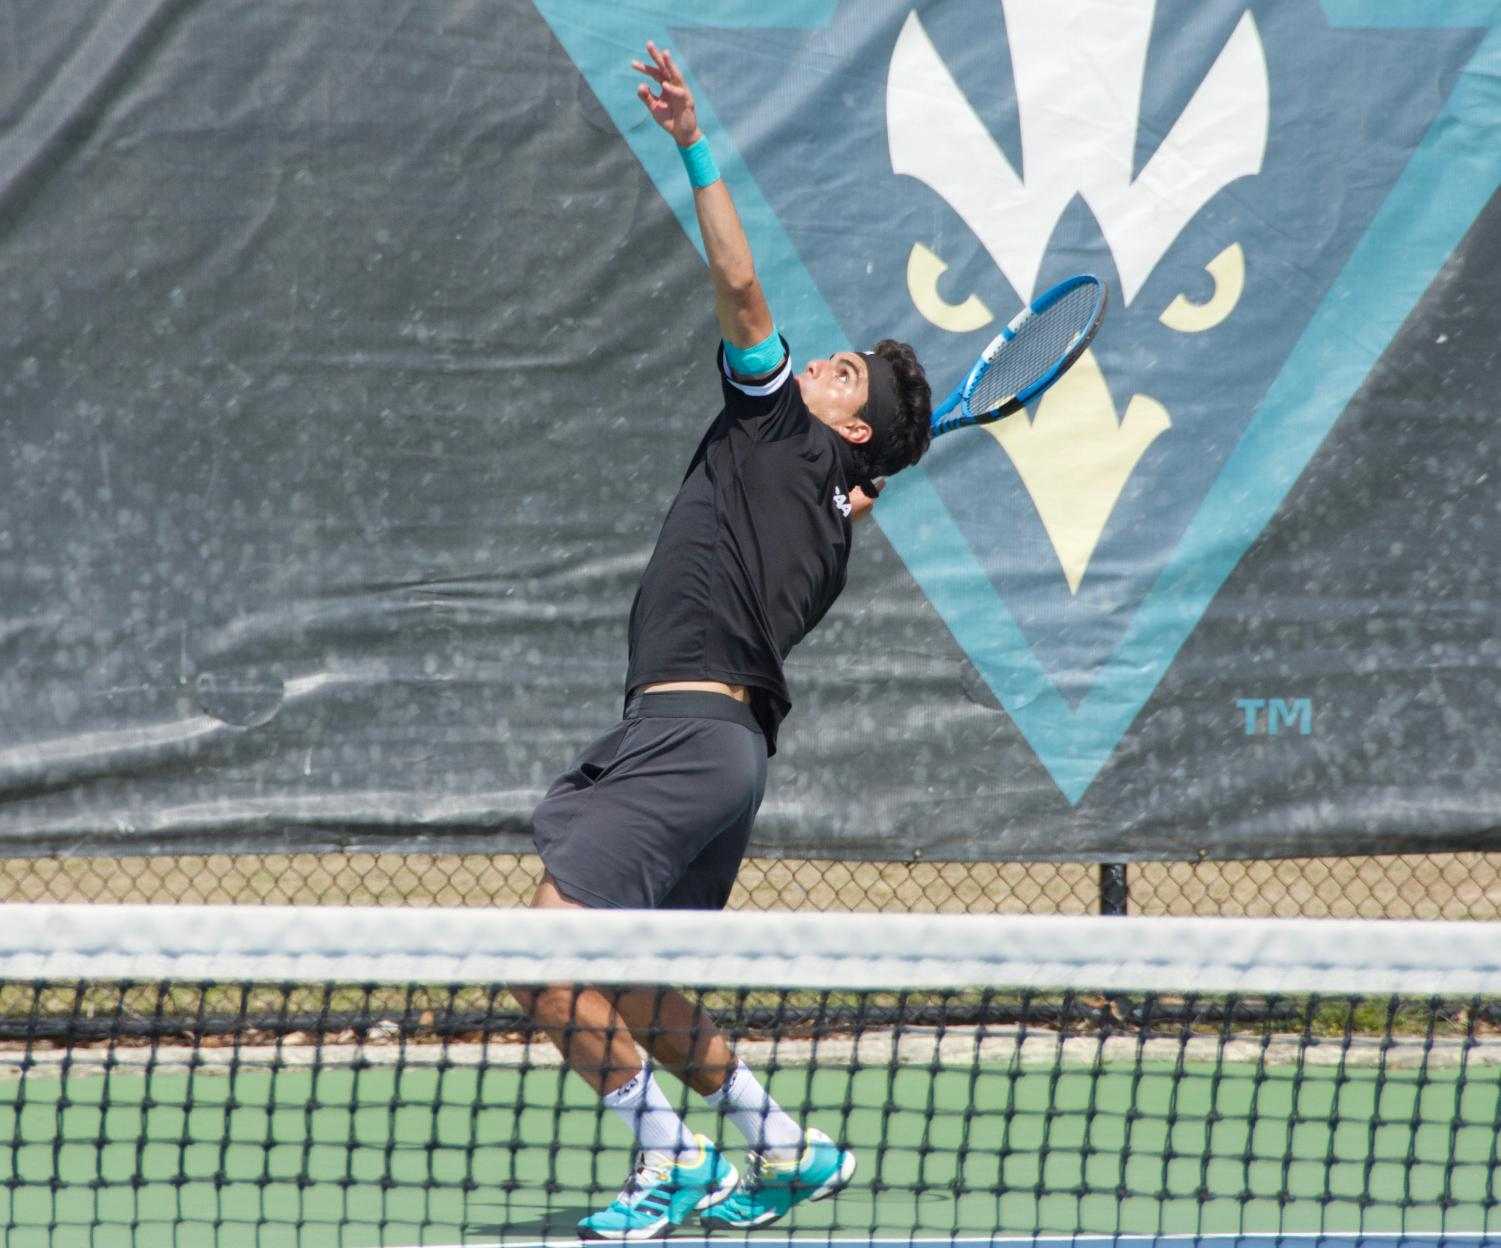 Agustin+Savarino+during+UNCW%27s+match+against+South+Carolina+State+on+March+25%2C+2019.+